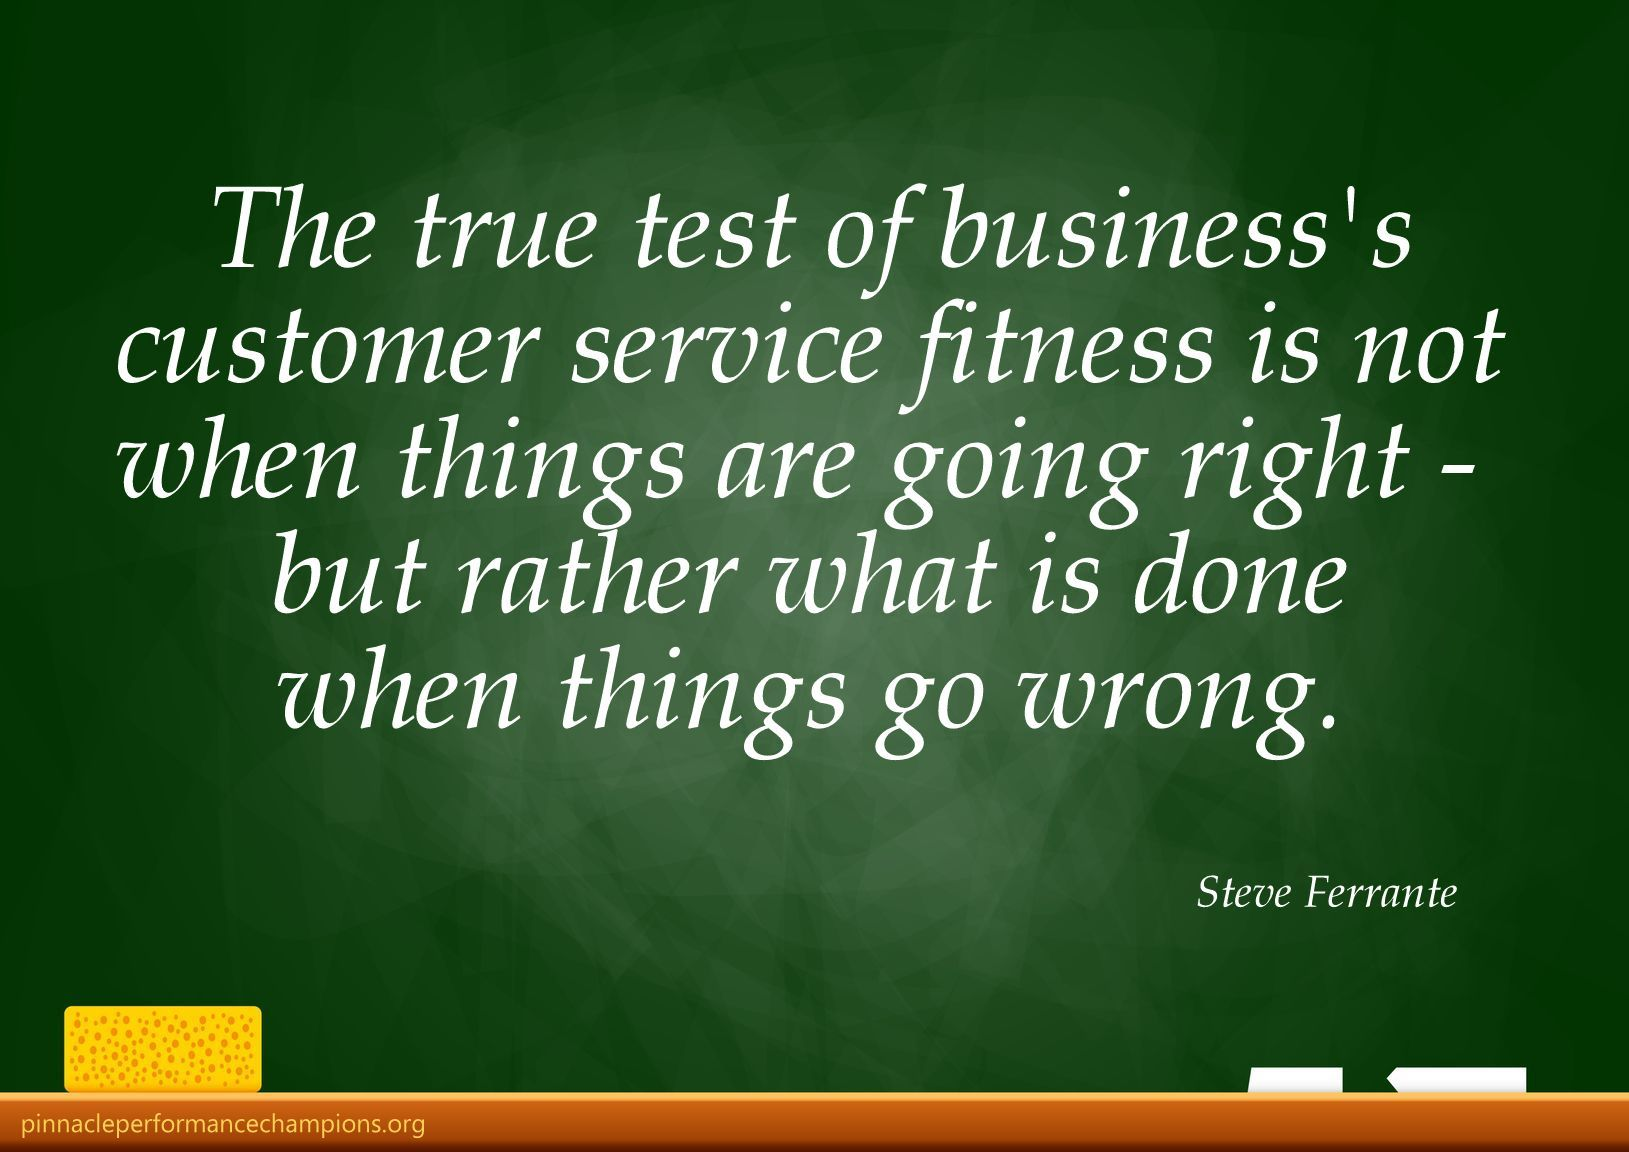 Customer Service Quotes When Your Business Fails At Customer Service. Pinnacle